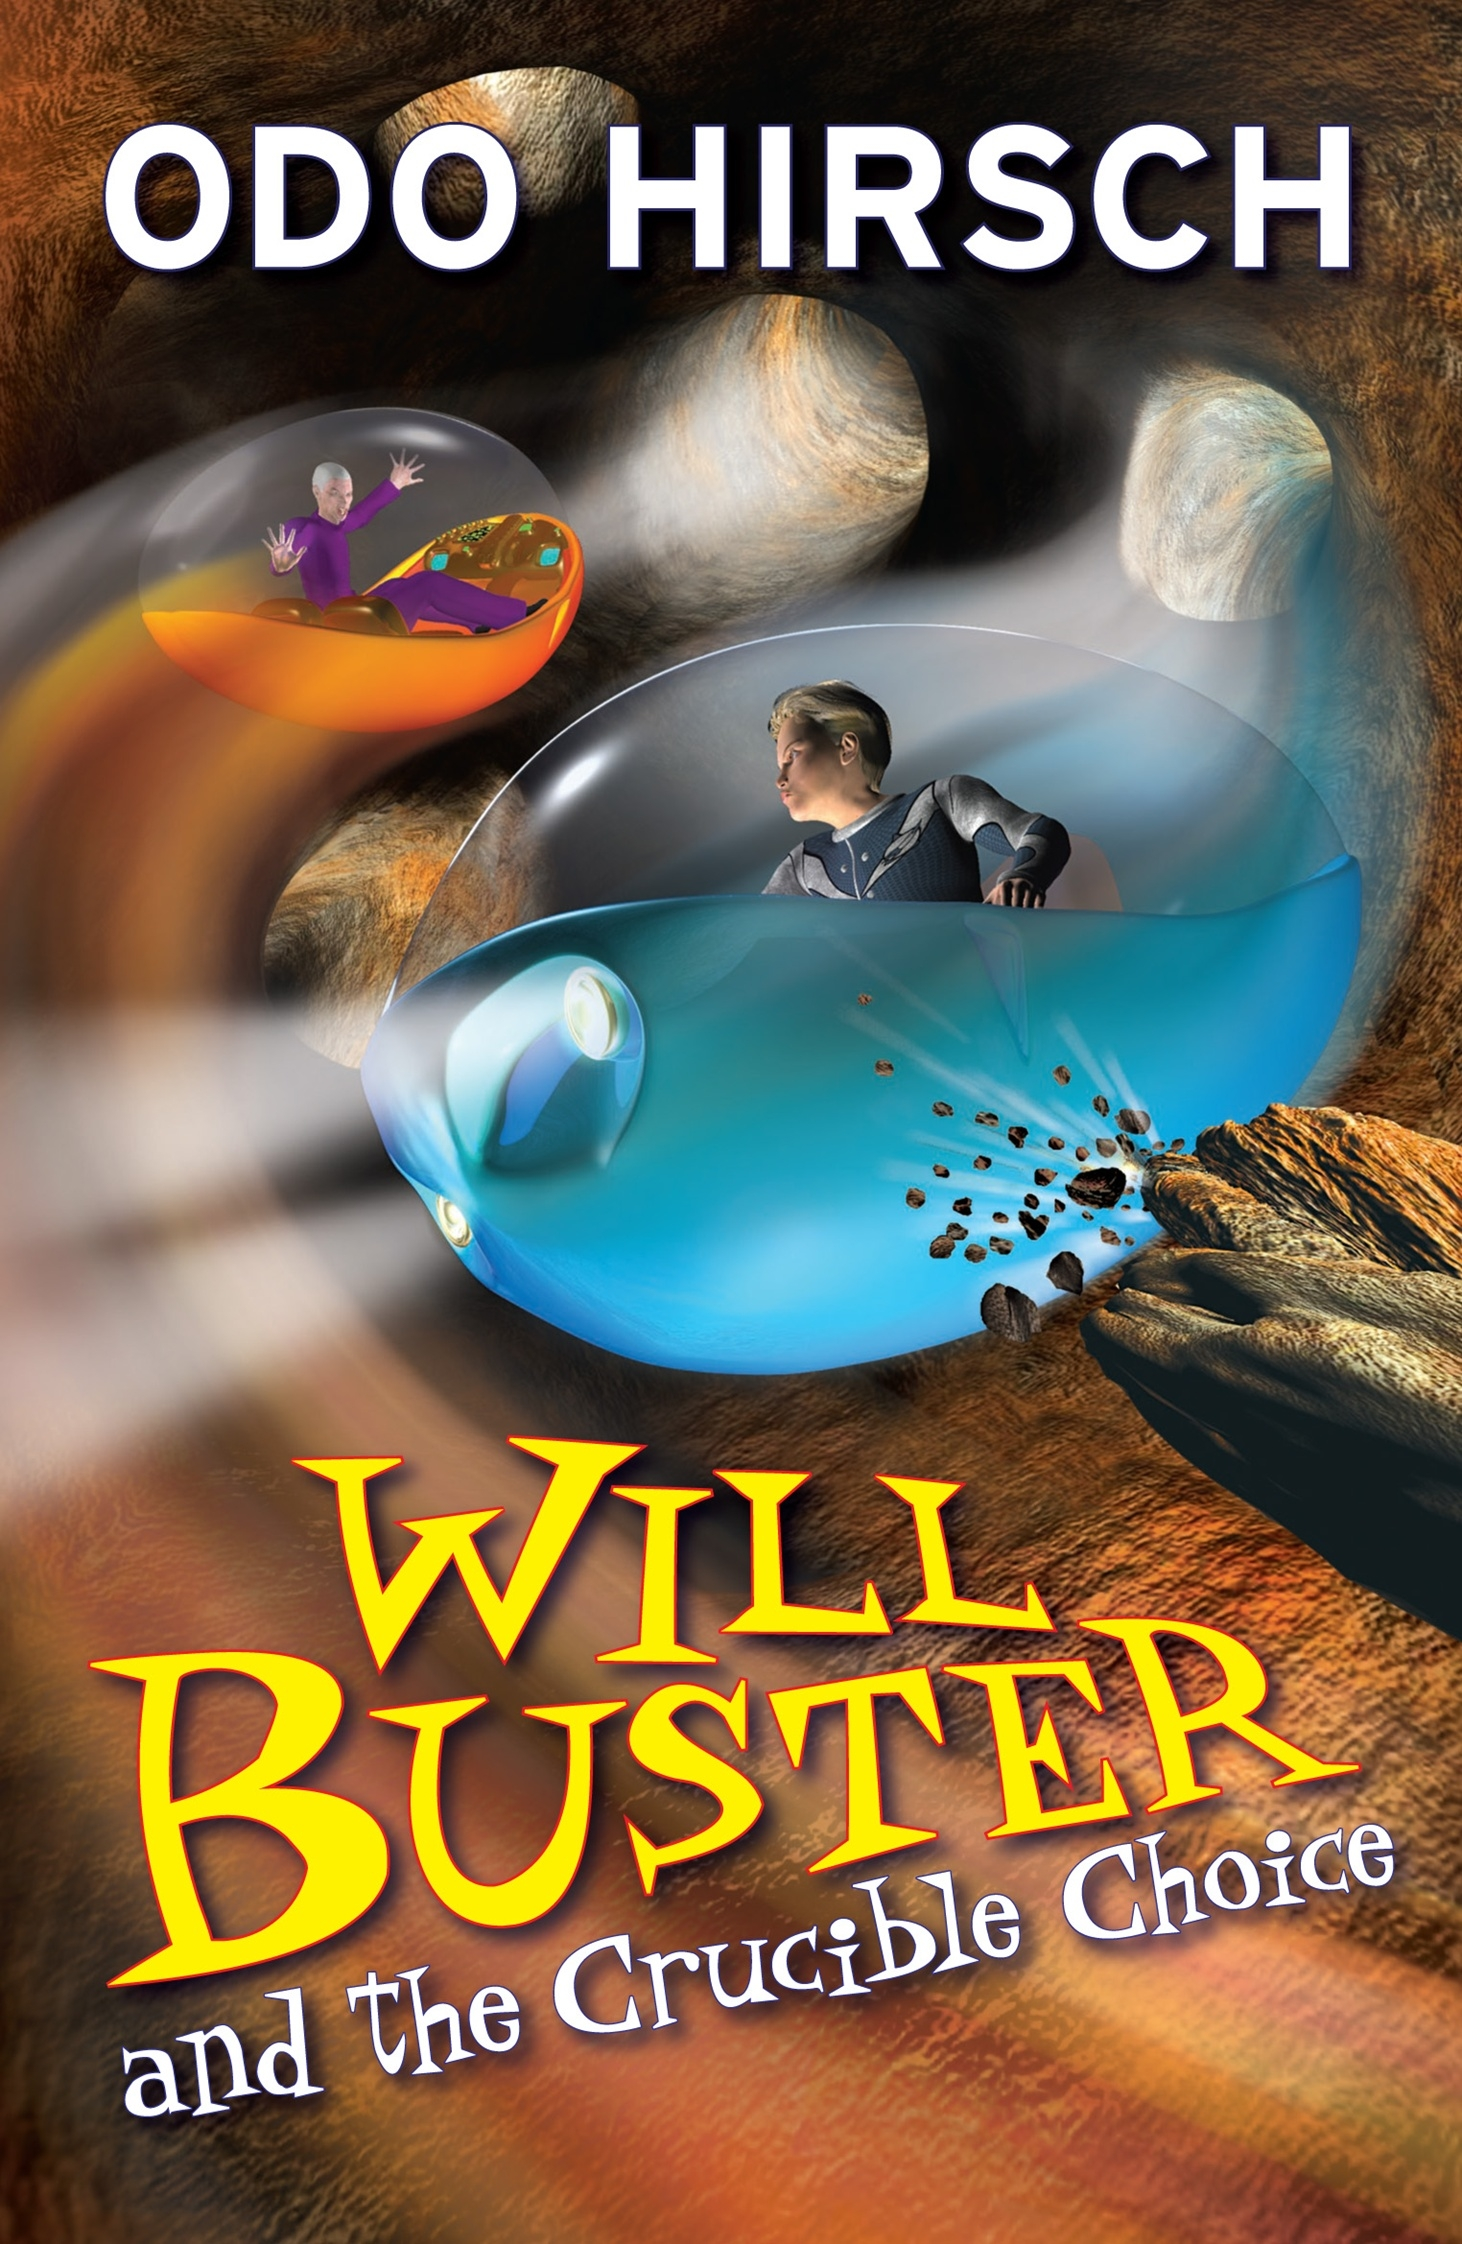 Will Buster and the Crucible Choice by Odo Hirsch - Penguin